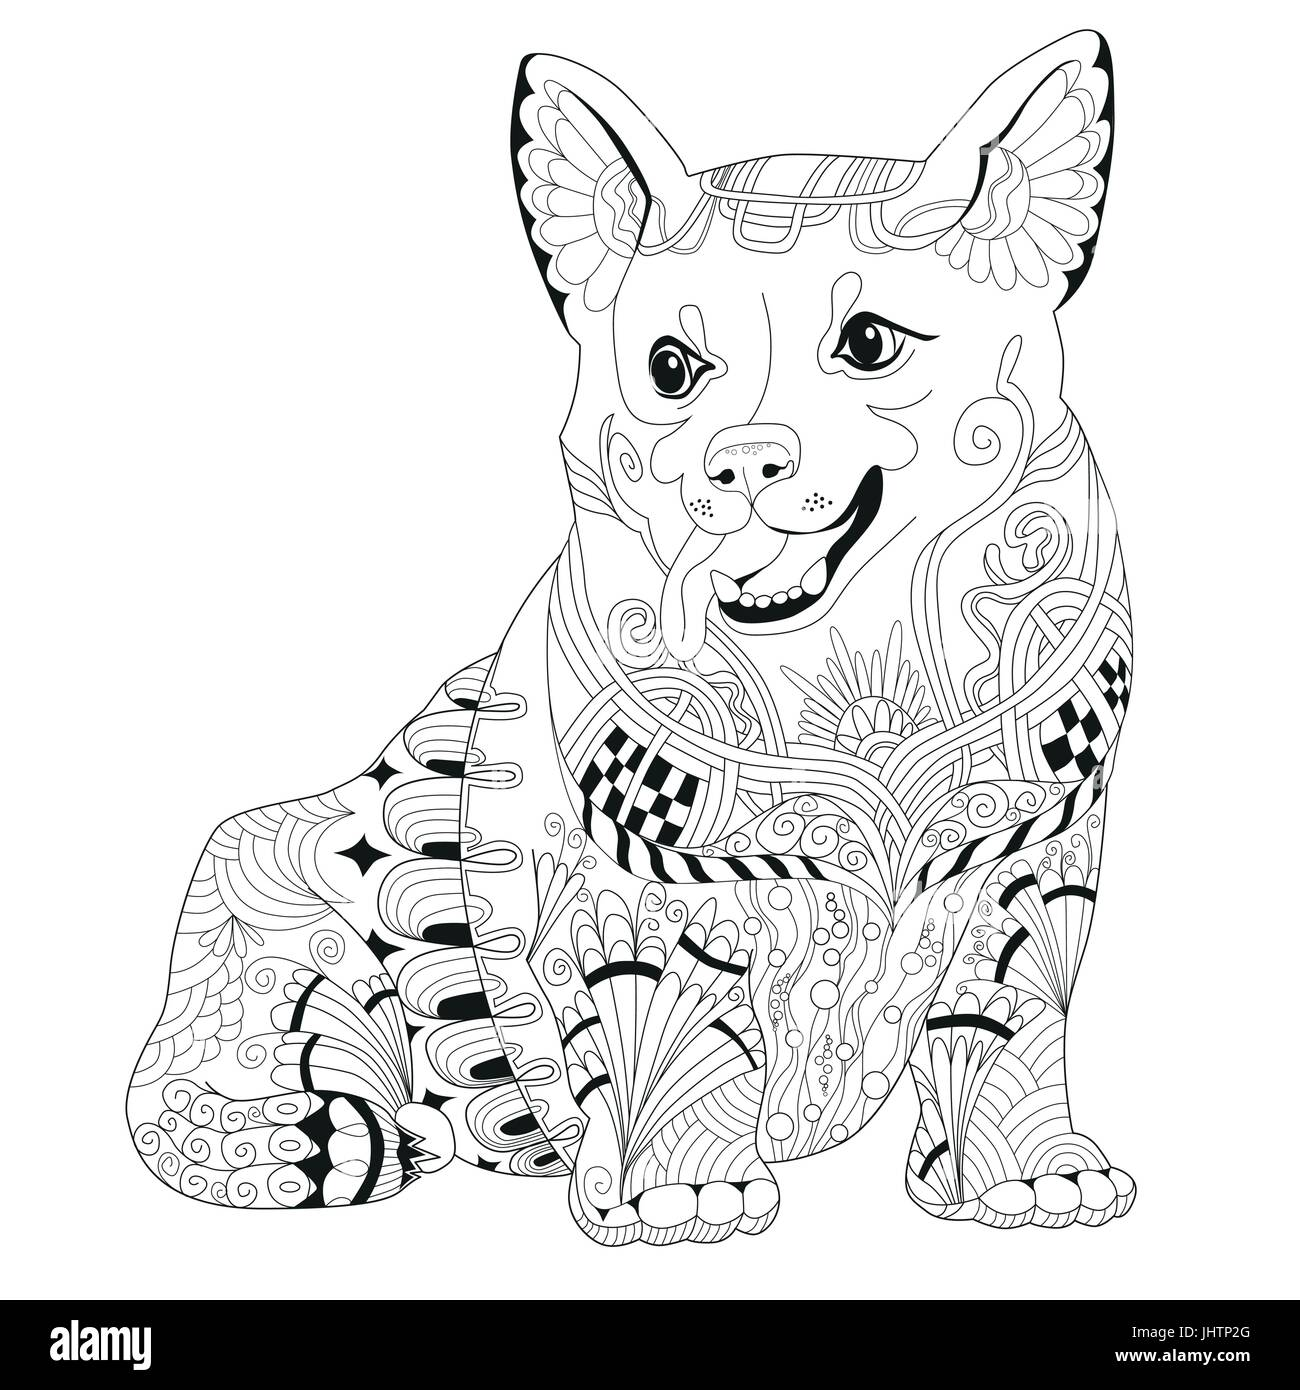 Coloriage Chien Springer.Dog Breed Book Photos Dog Breed Book Images Alamy